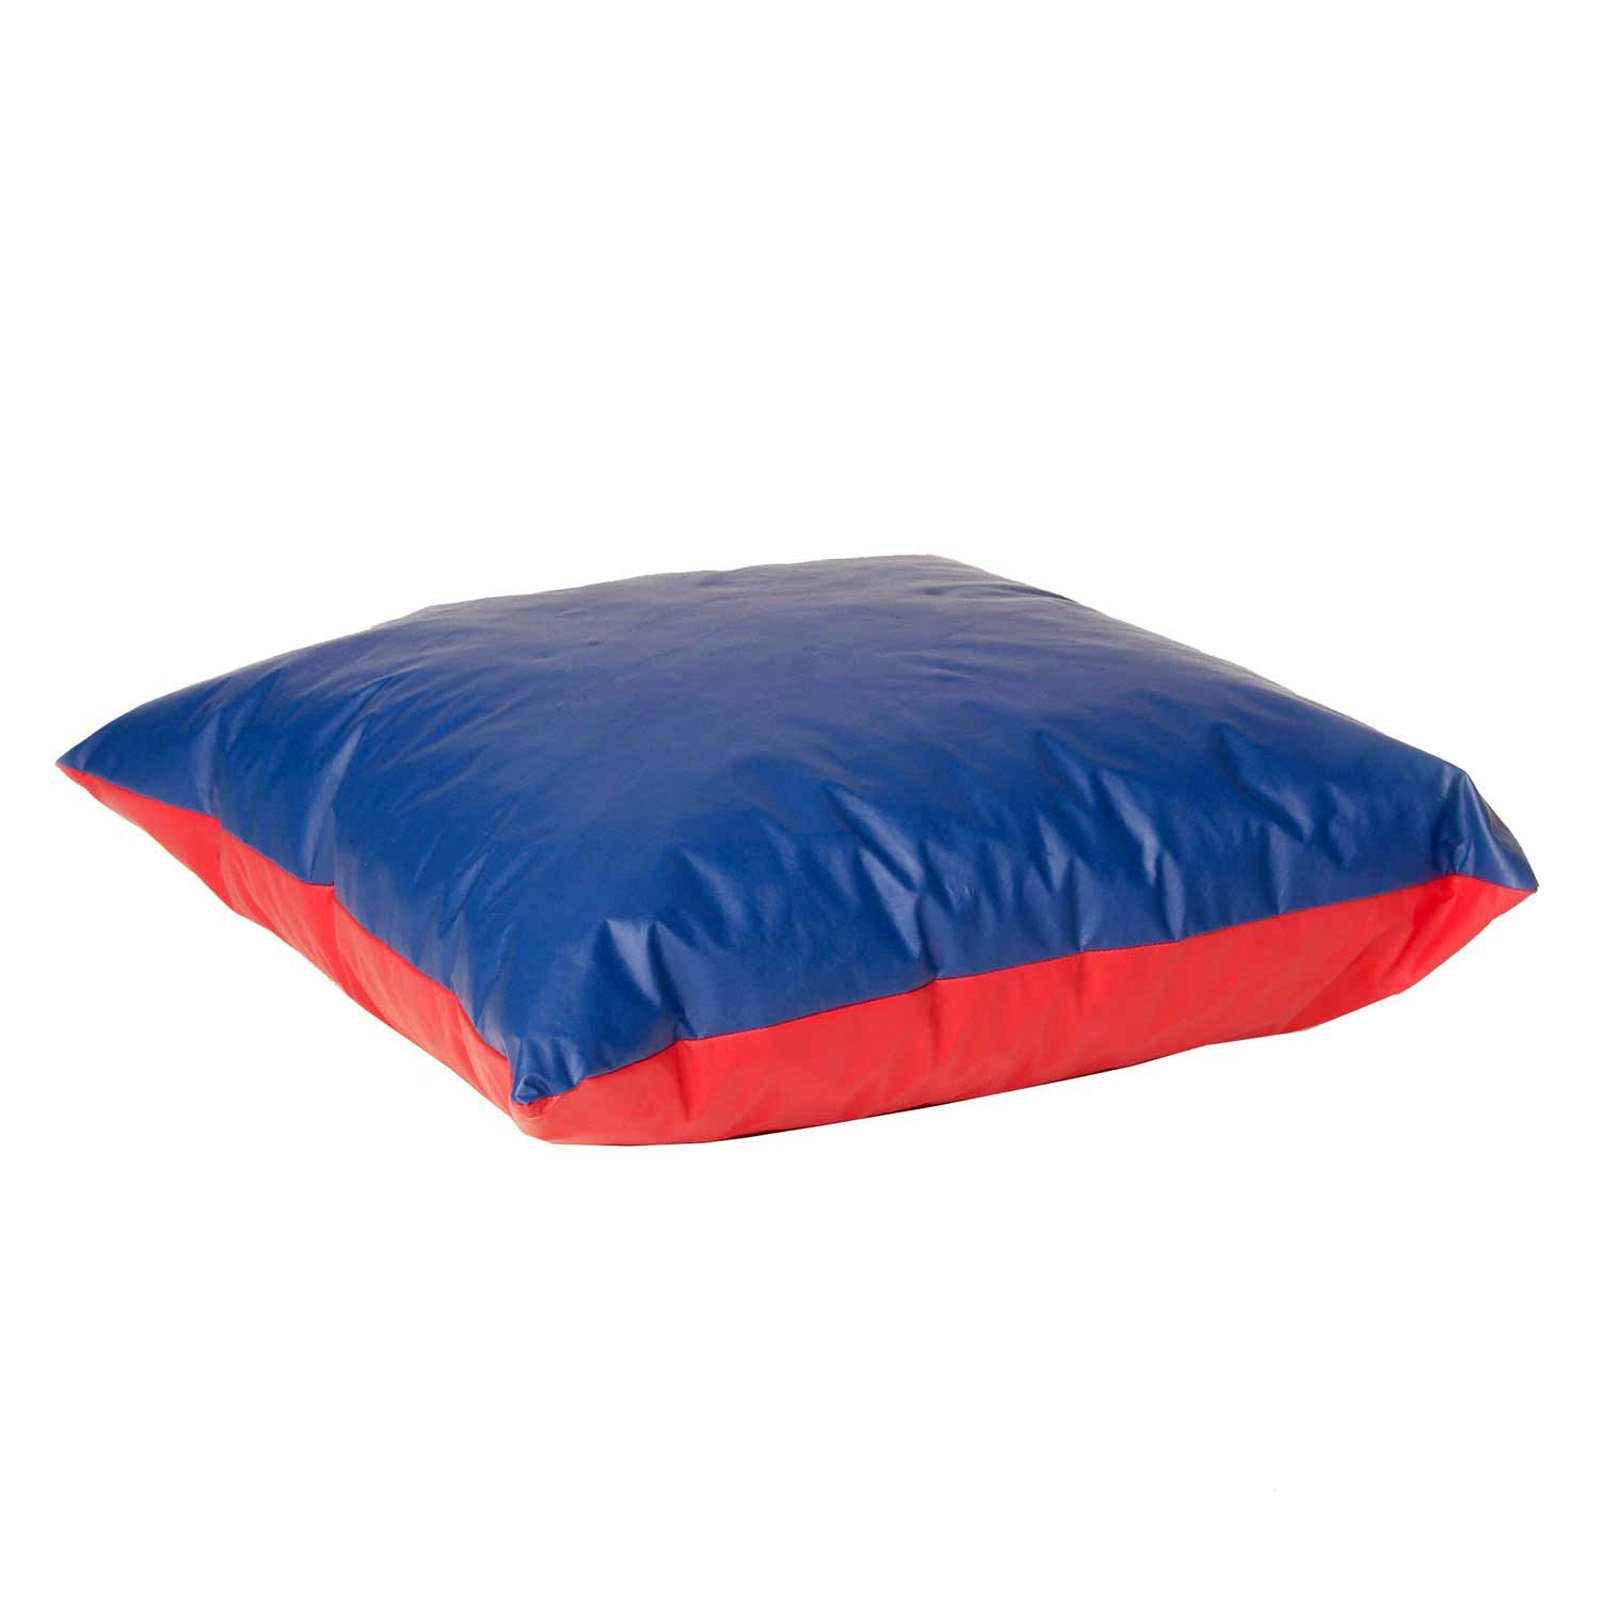 Foamnasium Small Shred Pillow Soft Play